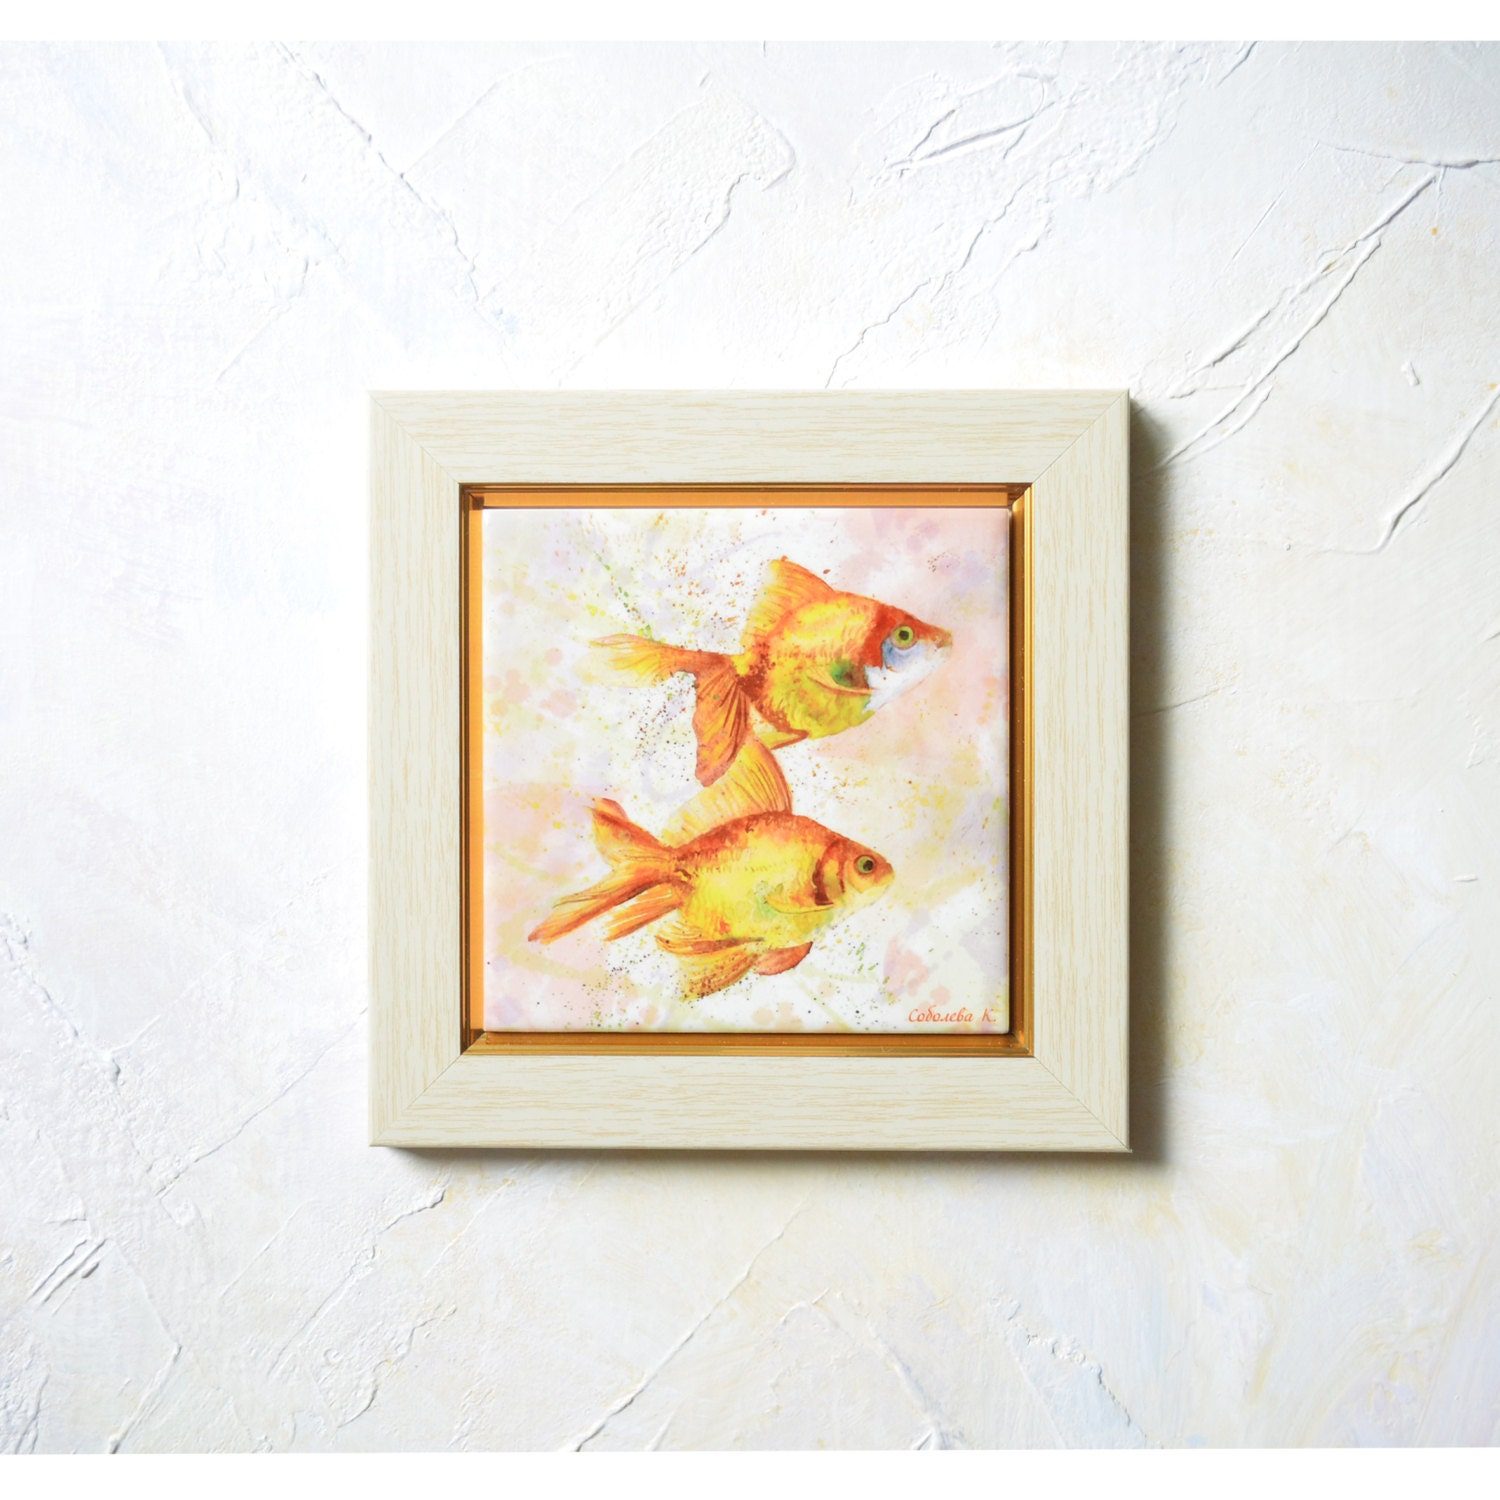 Gold fishes painting watercolour ceramic tile wall art hand - Painting ceramic tile walls ...